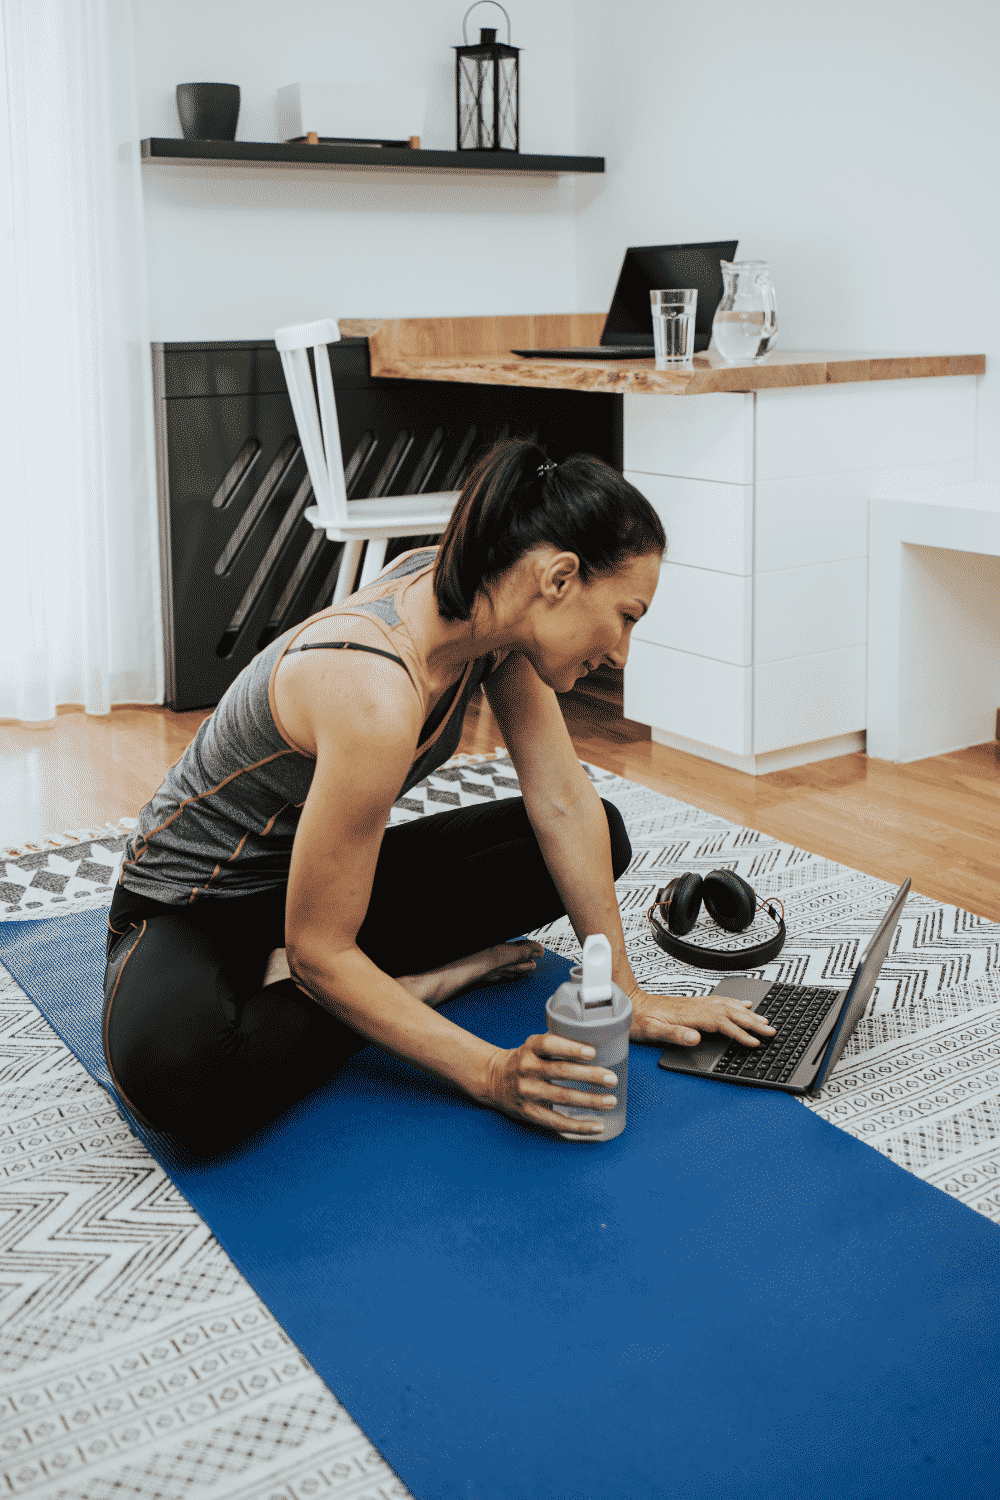 A woman takes a break from remote work to exercise